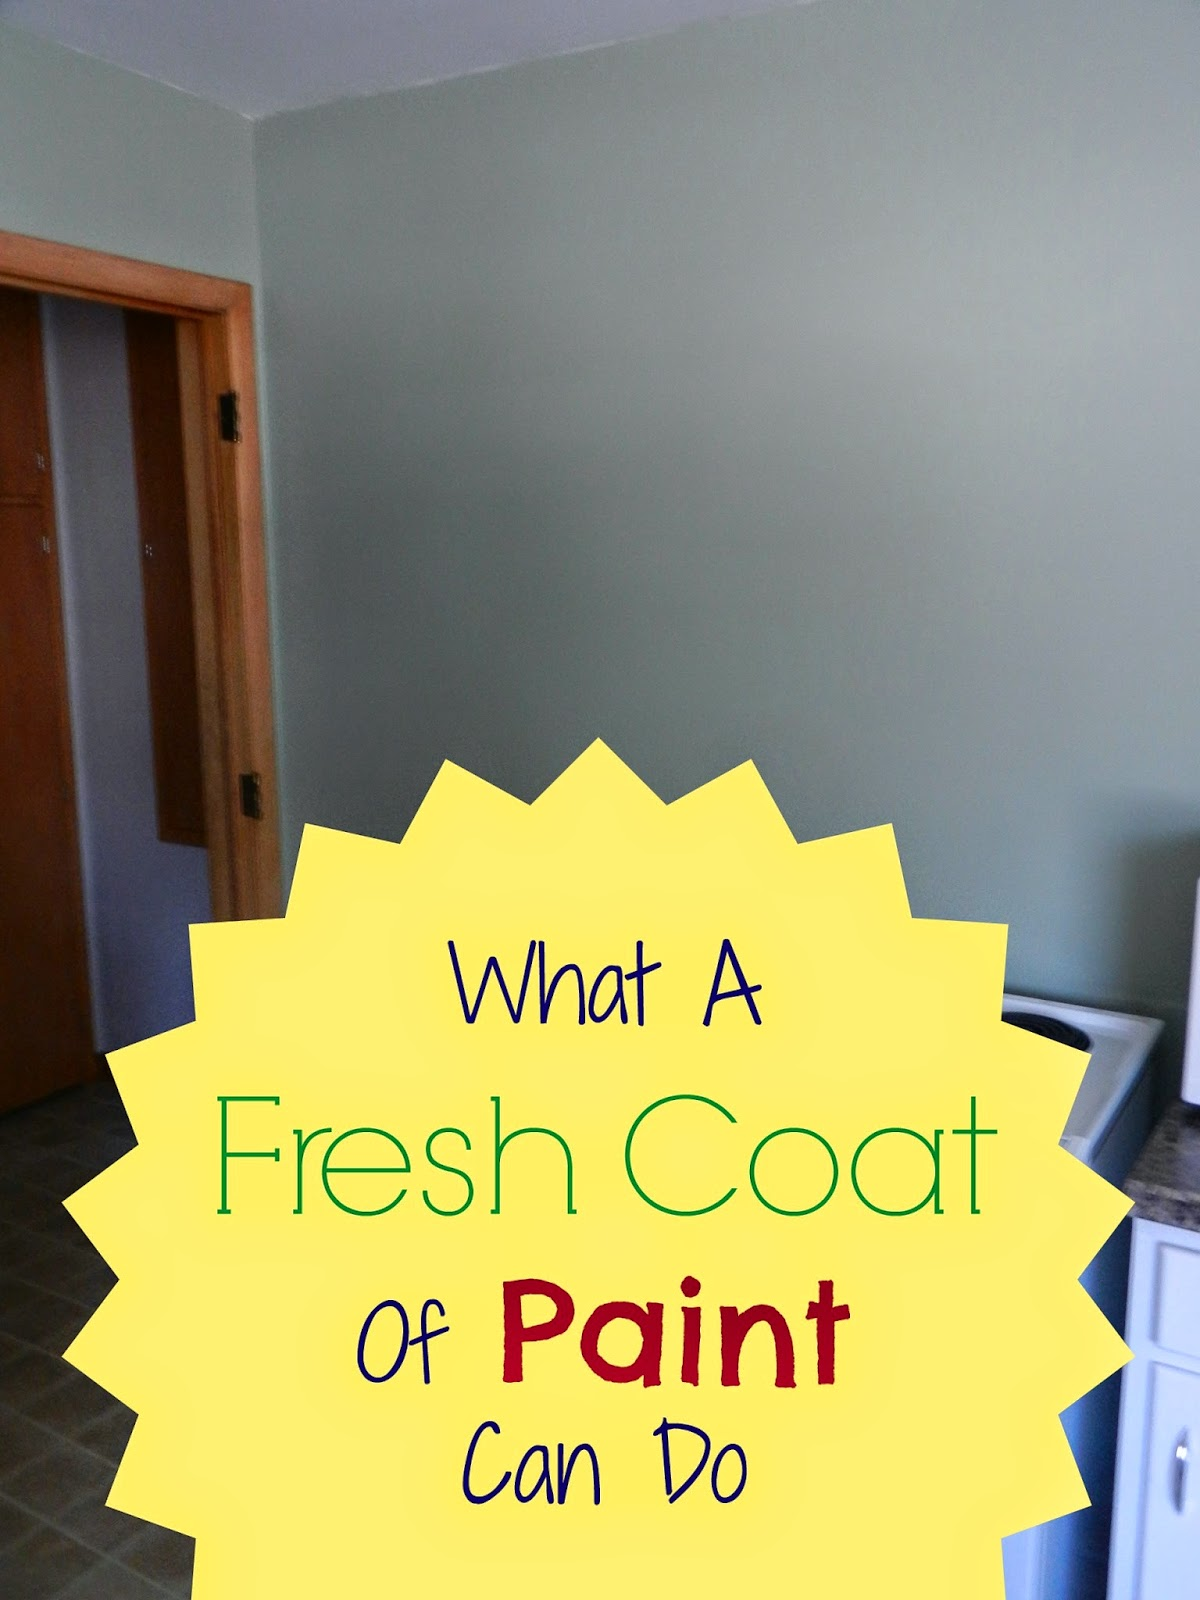 What A Fresh Coat Of Paint Can Do